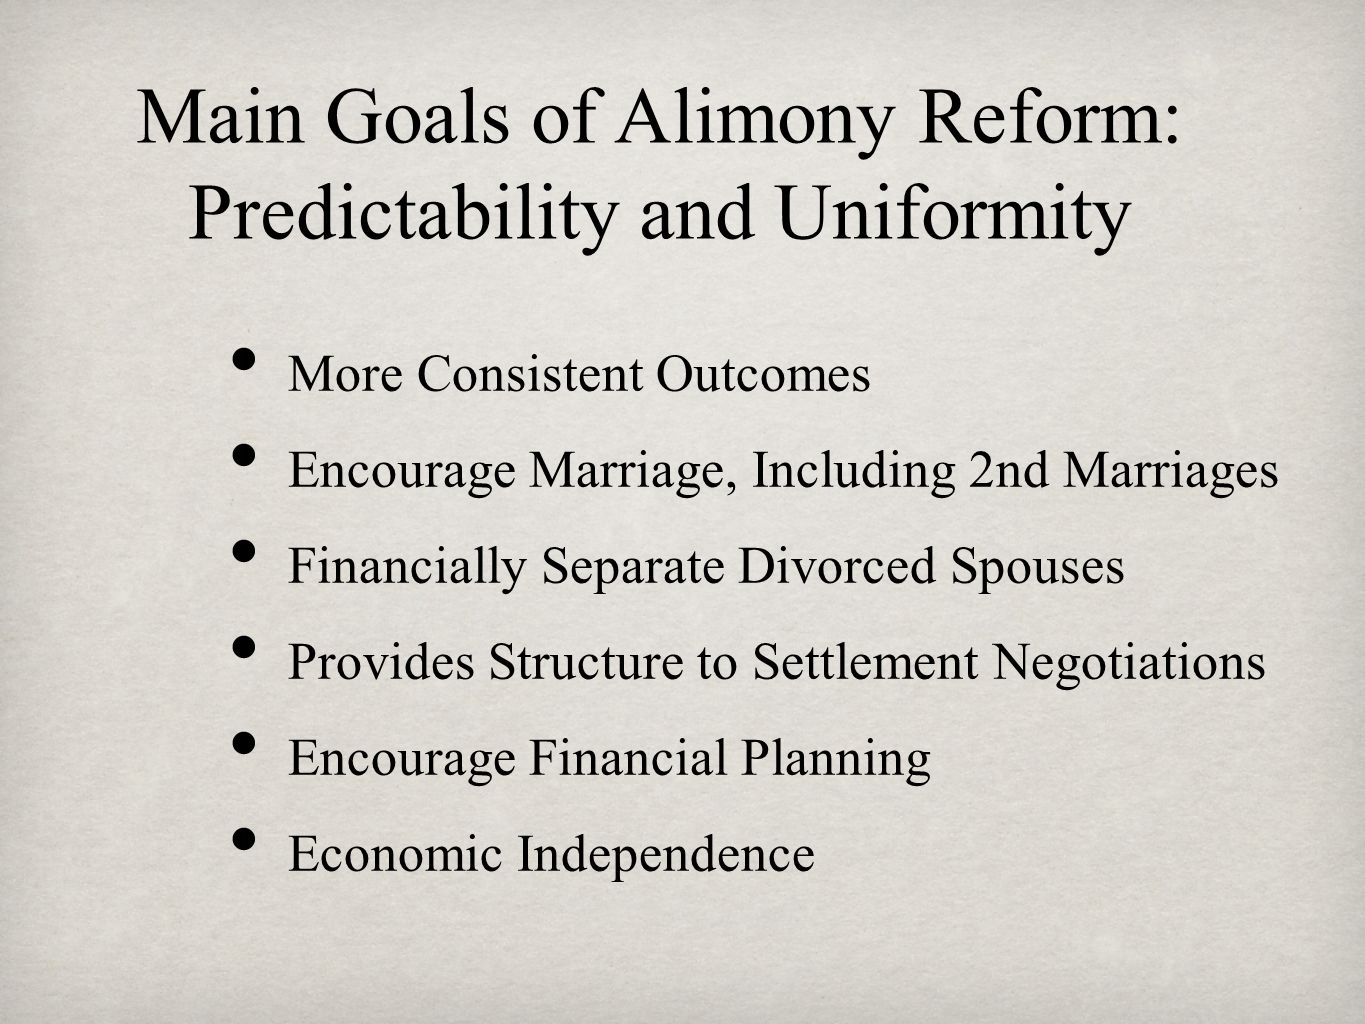 Main Goals of Alimony Reform: Predictability and Uniformity